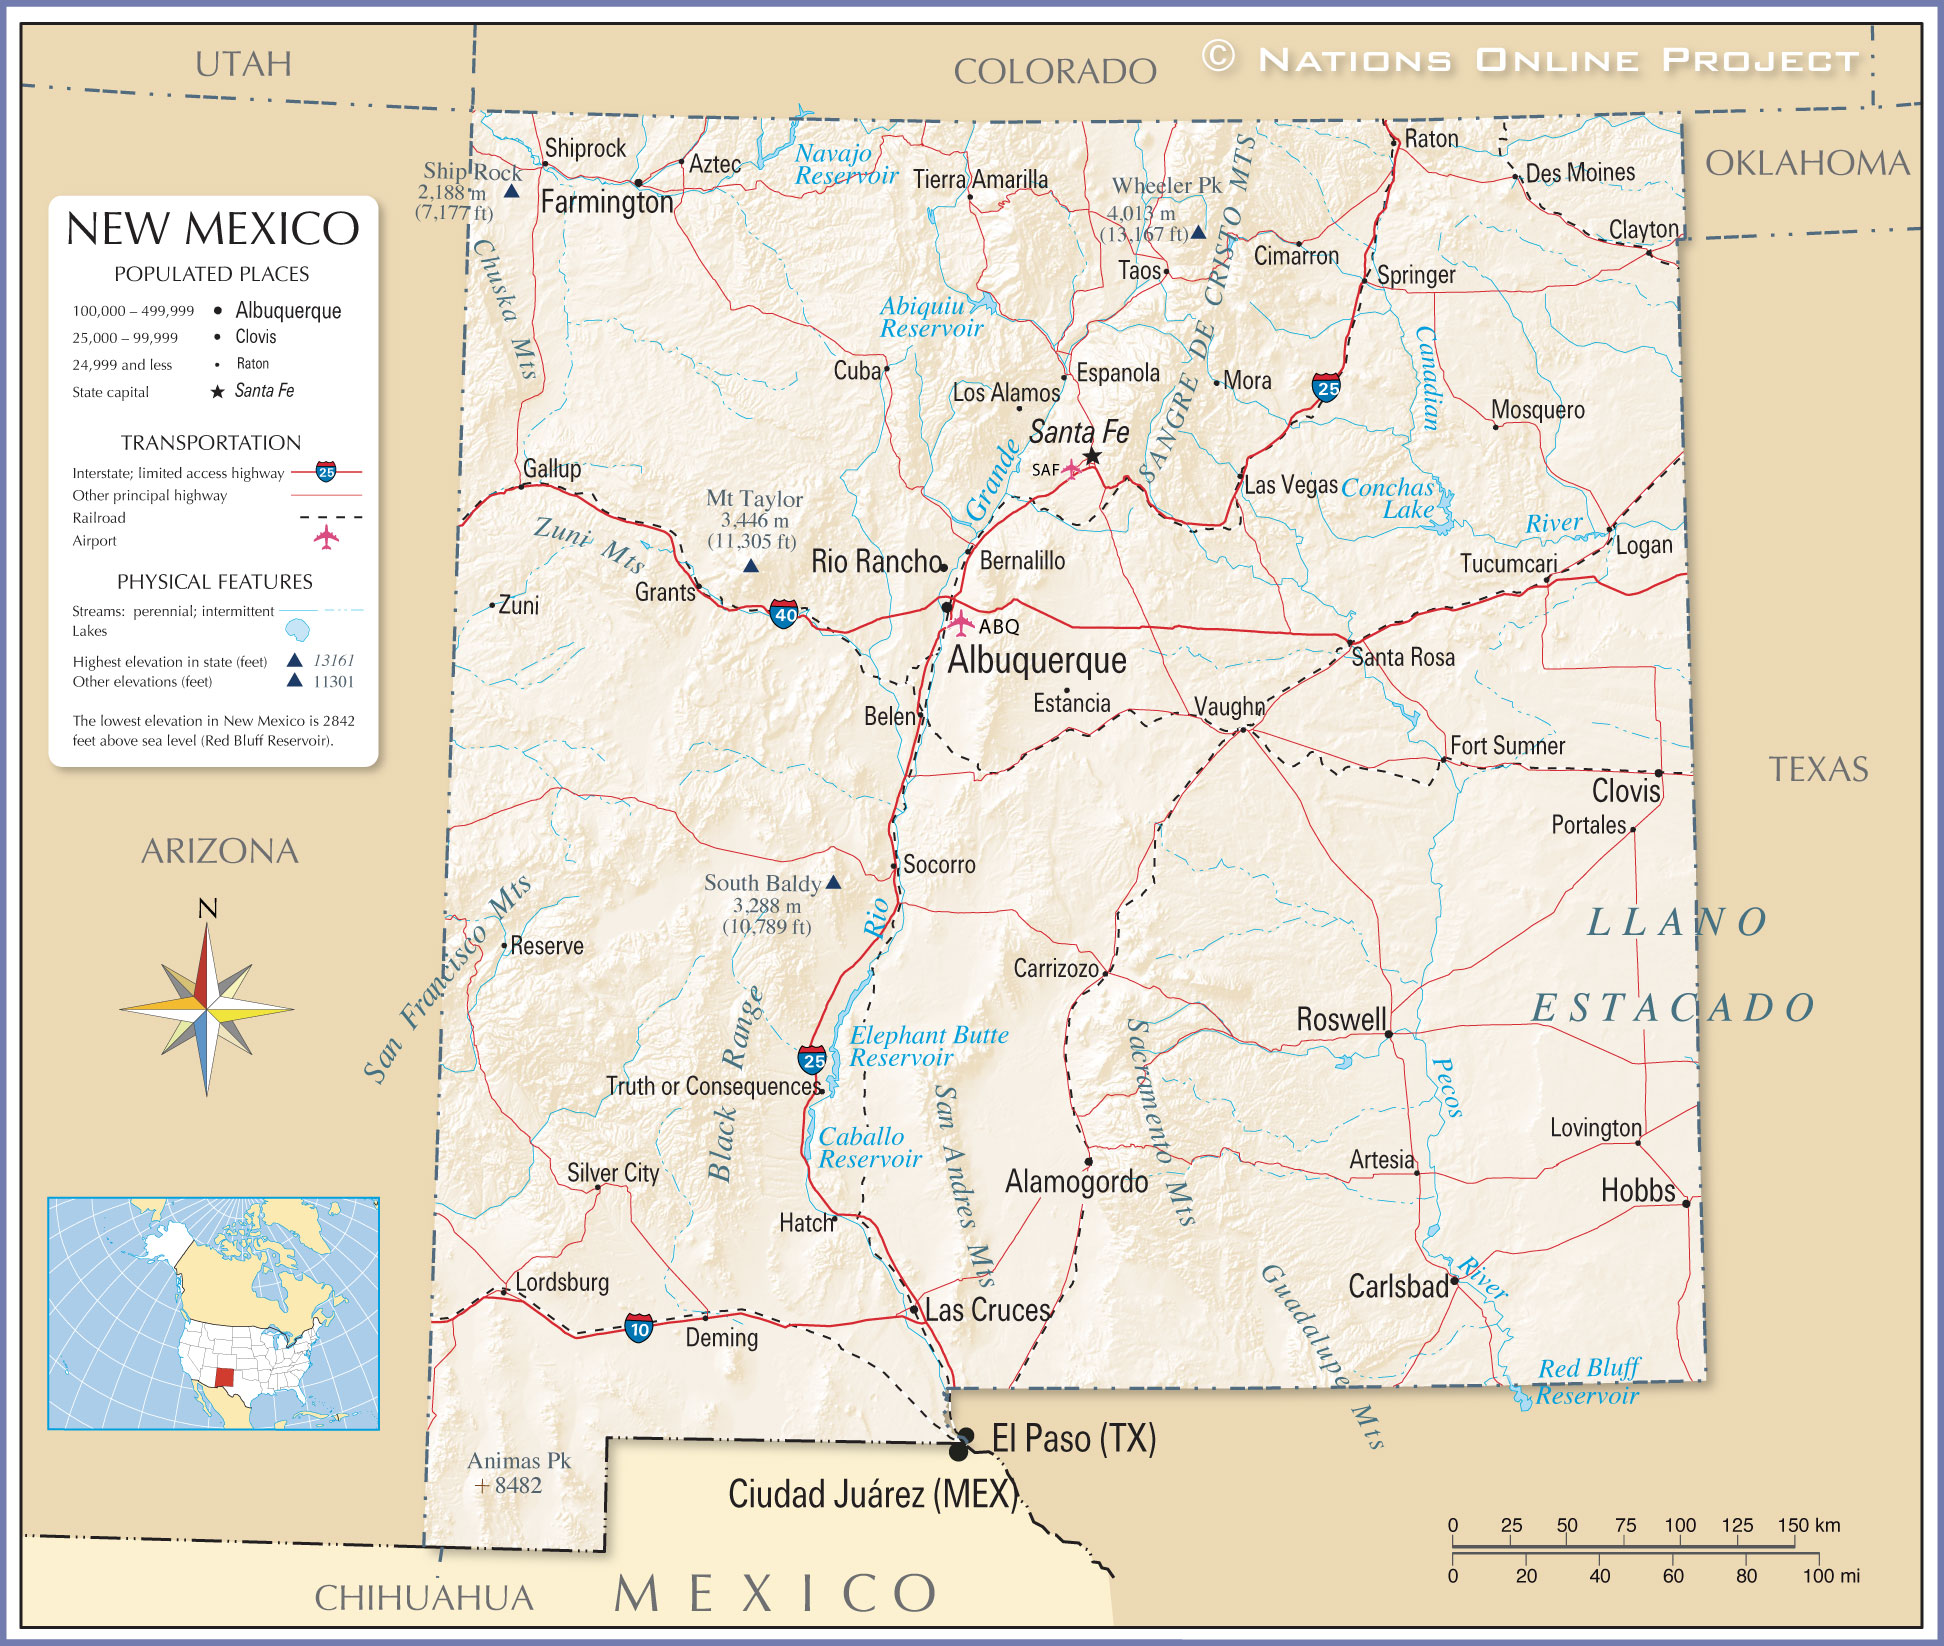 New Mexico Map Usa Map of the State of New Mexico, USA   Nations Online Project